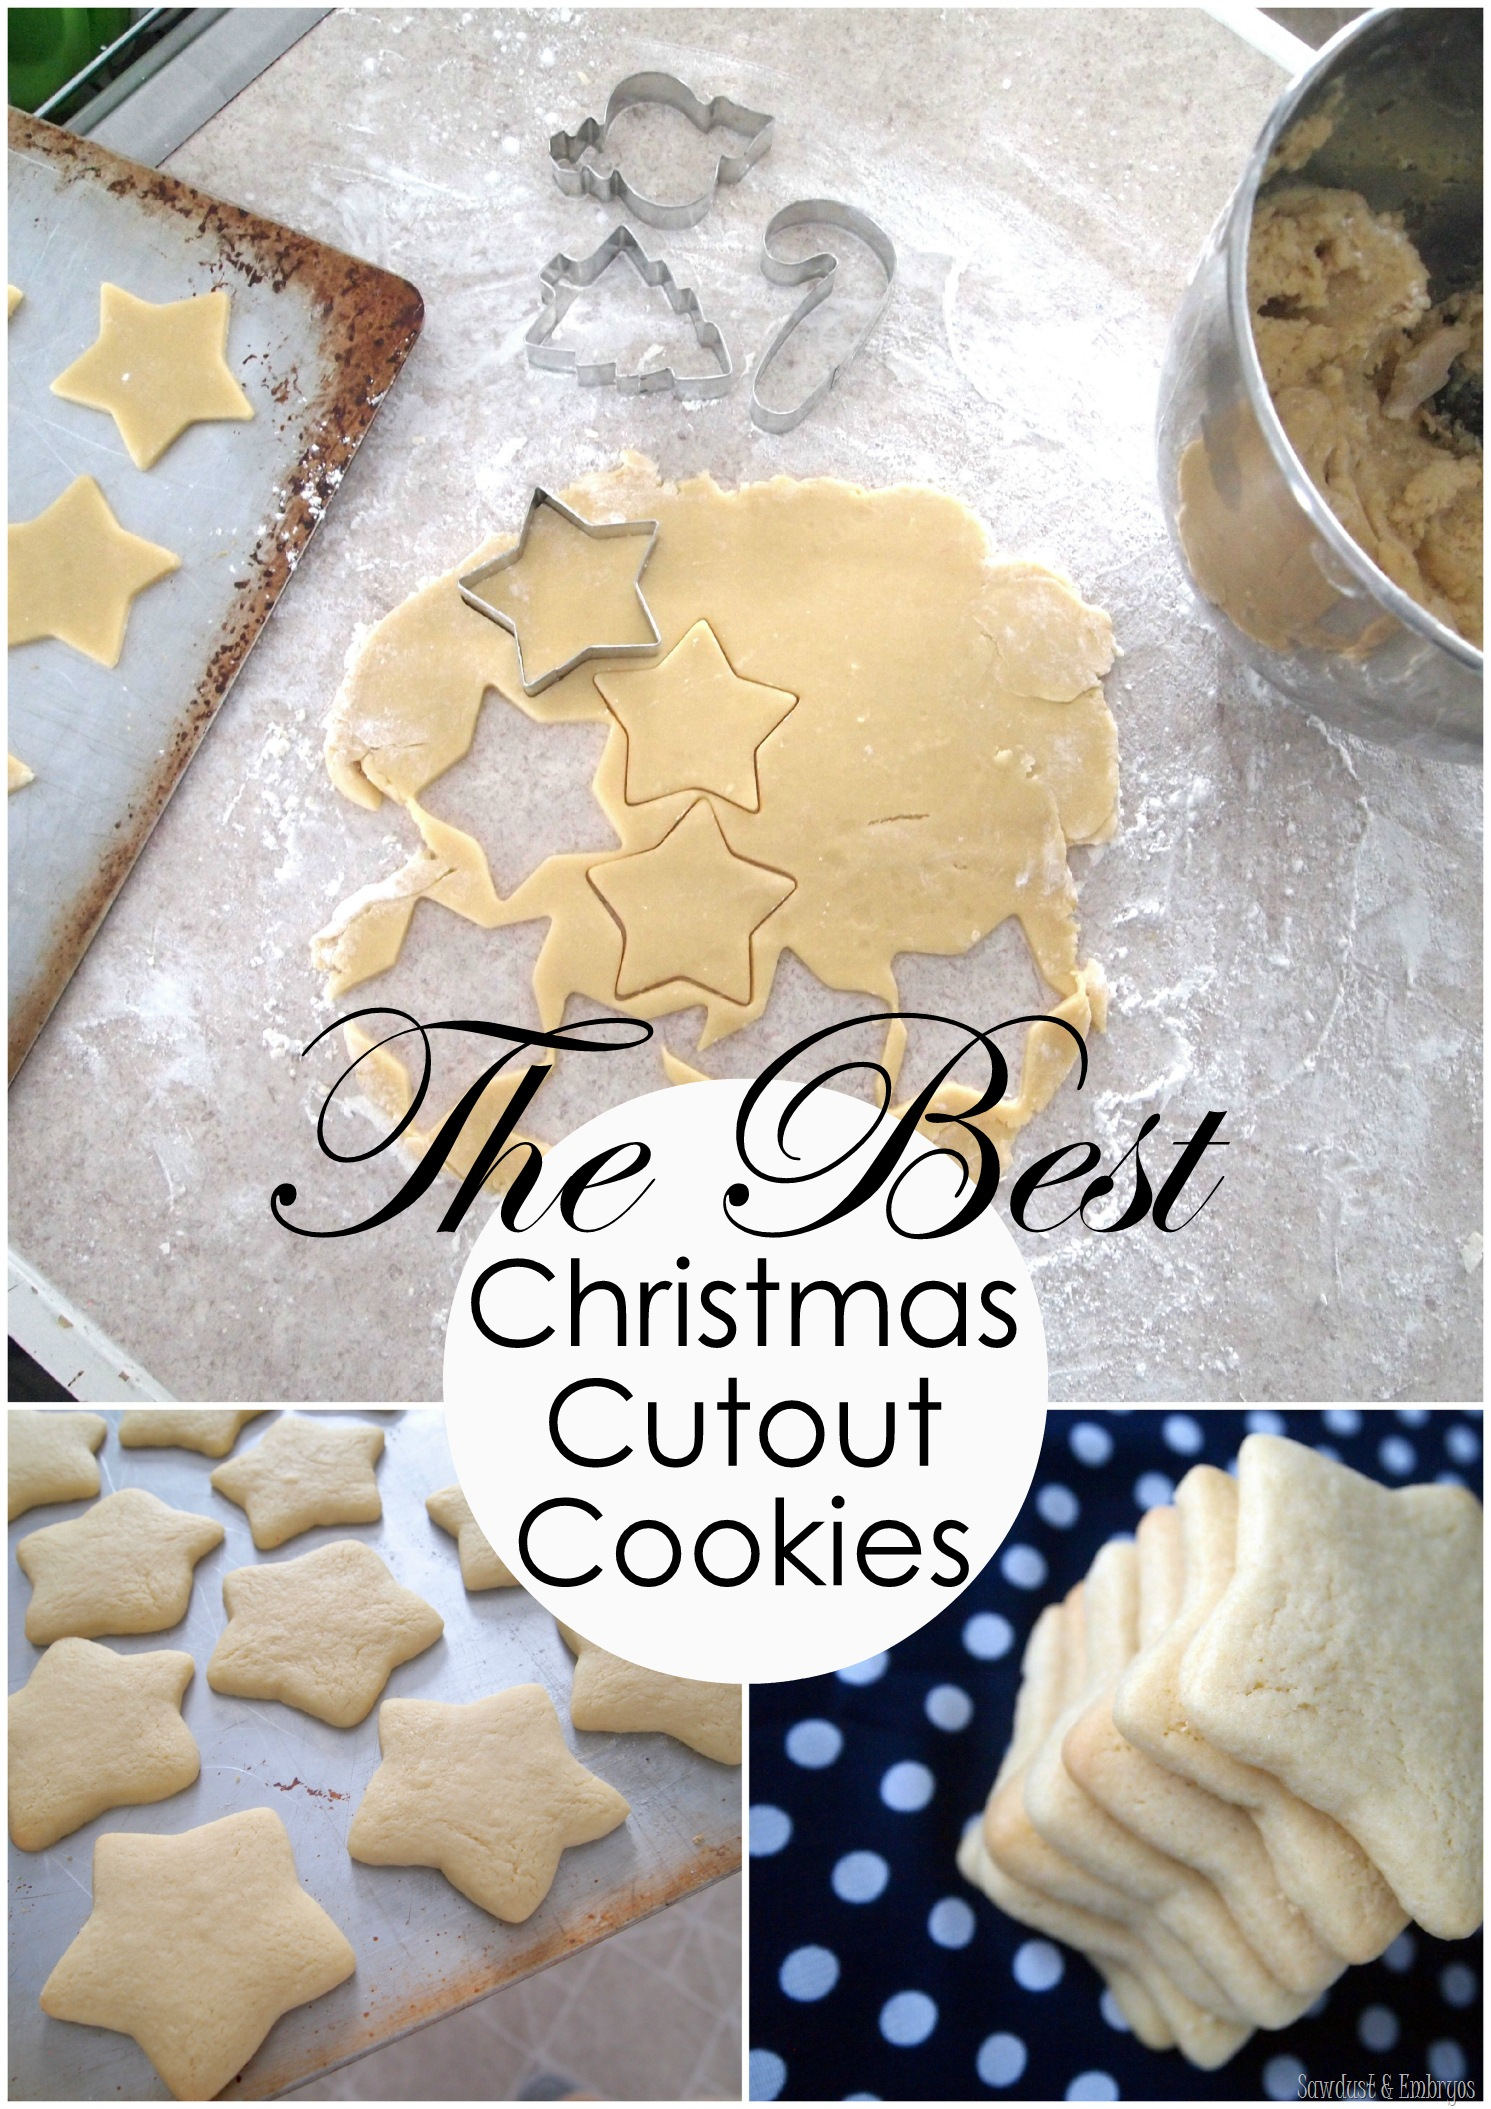 The Most Perfect Christmas Cut Out Cookies